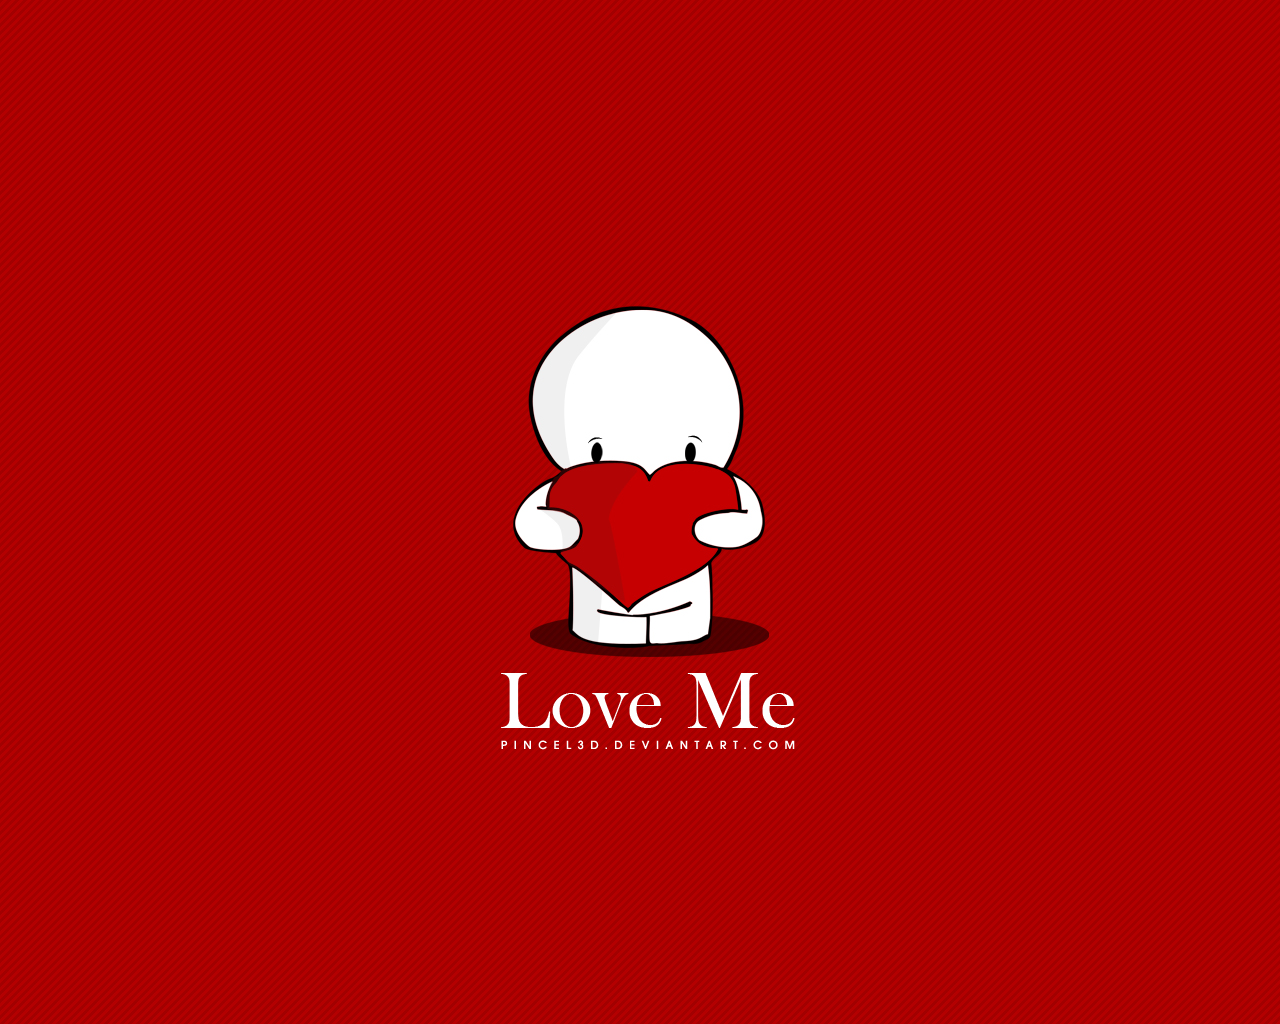 Love Me - Wallpaper